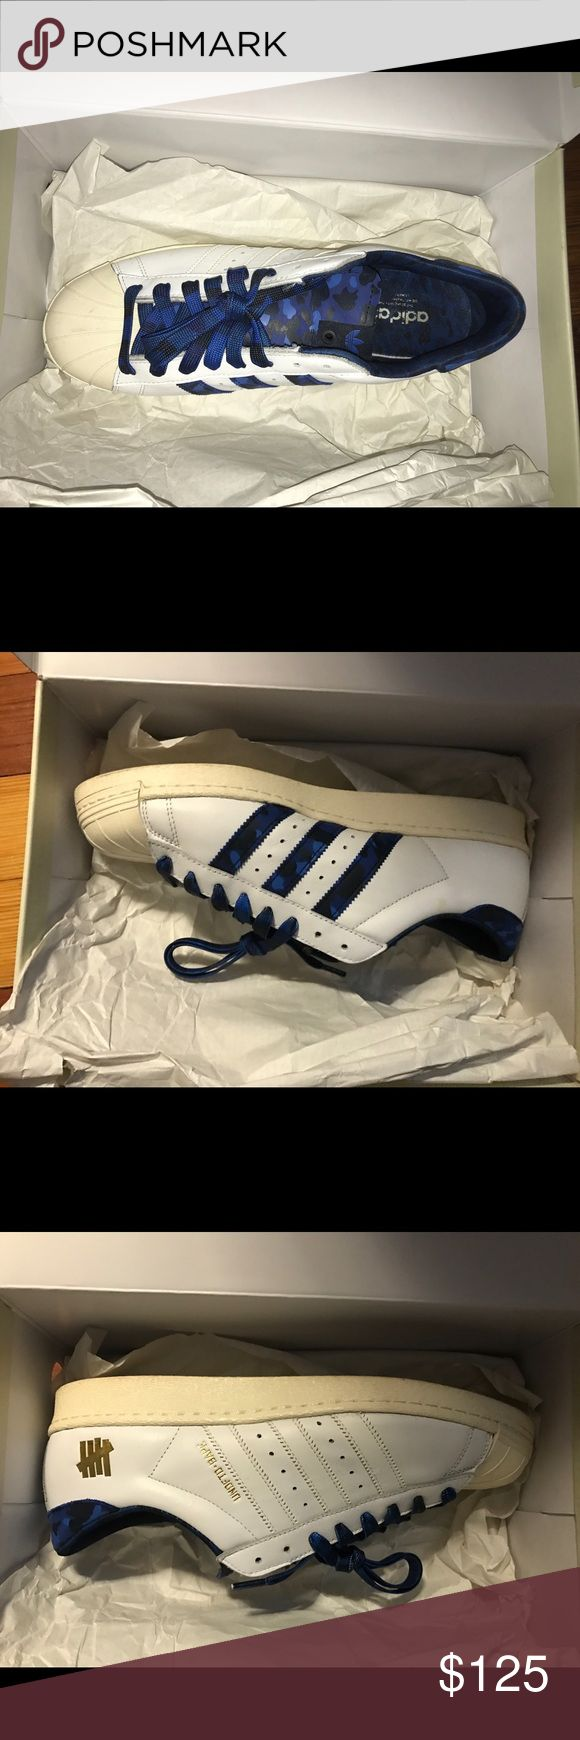 Bape x Undefeated x Adidas Superstar used Bape x undefeated x adidas collaboration white with blue camo on the insoles along with blue camo laces and white laces. Used in great condition 8/10 minor creasing no trades. Adidas Shoes Sneakers